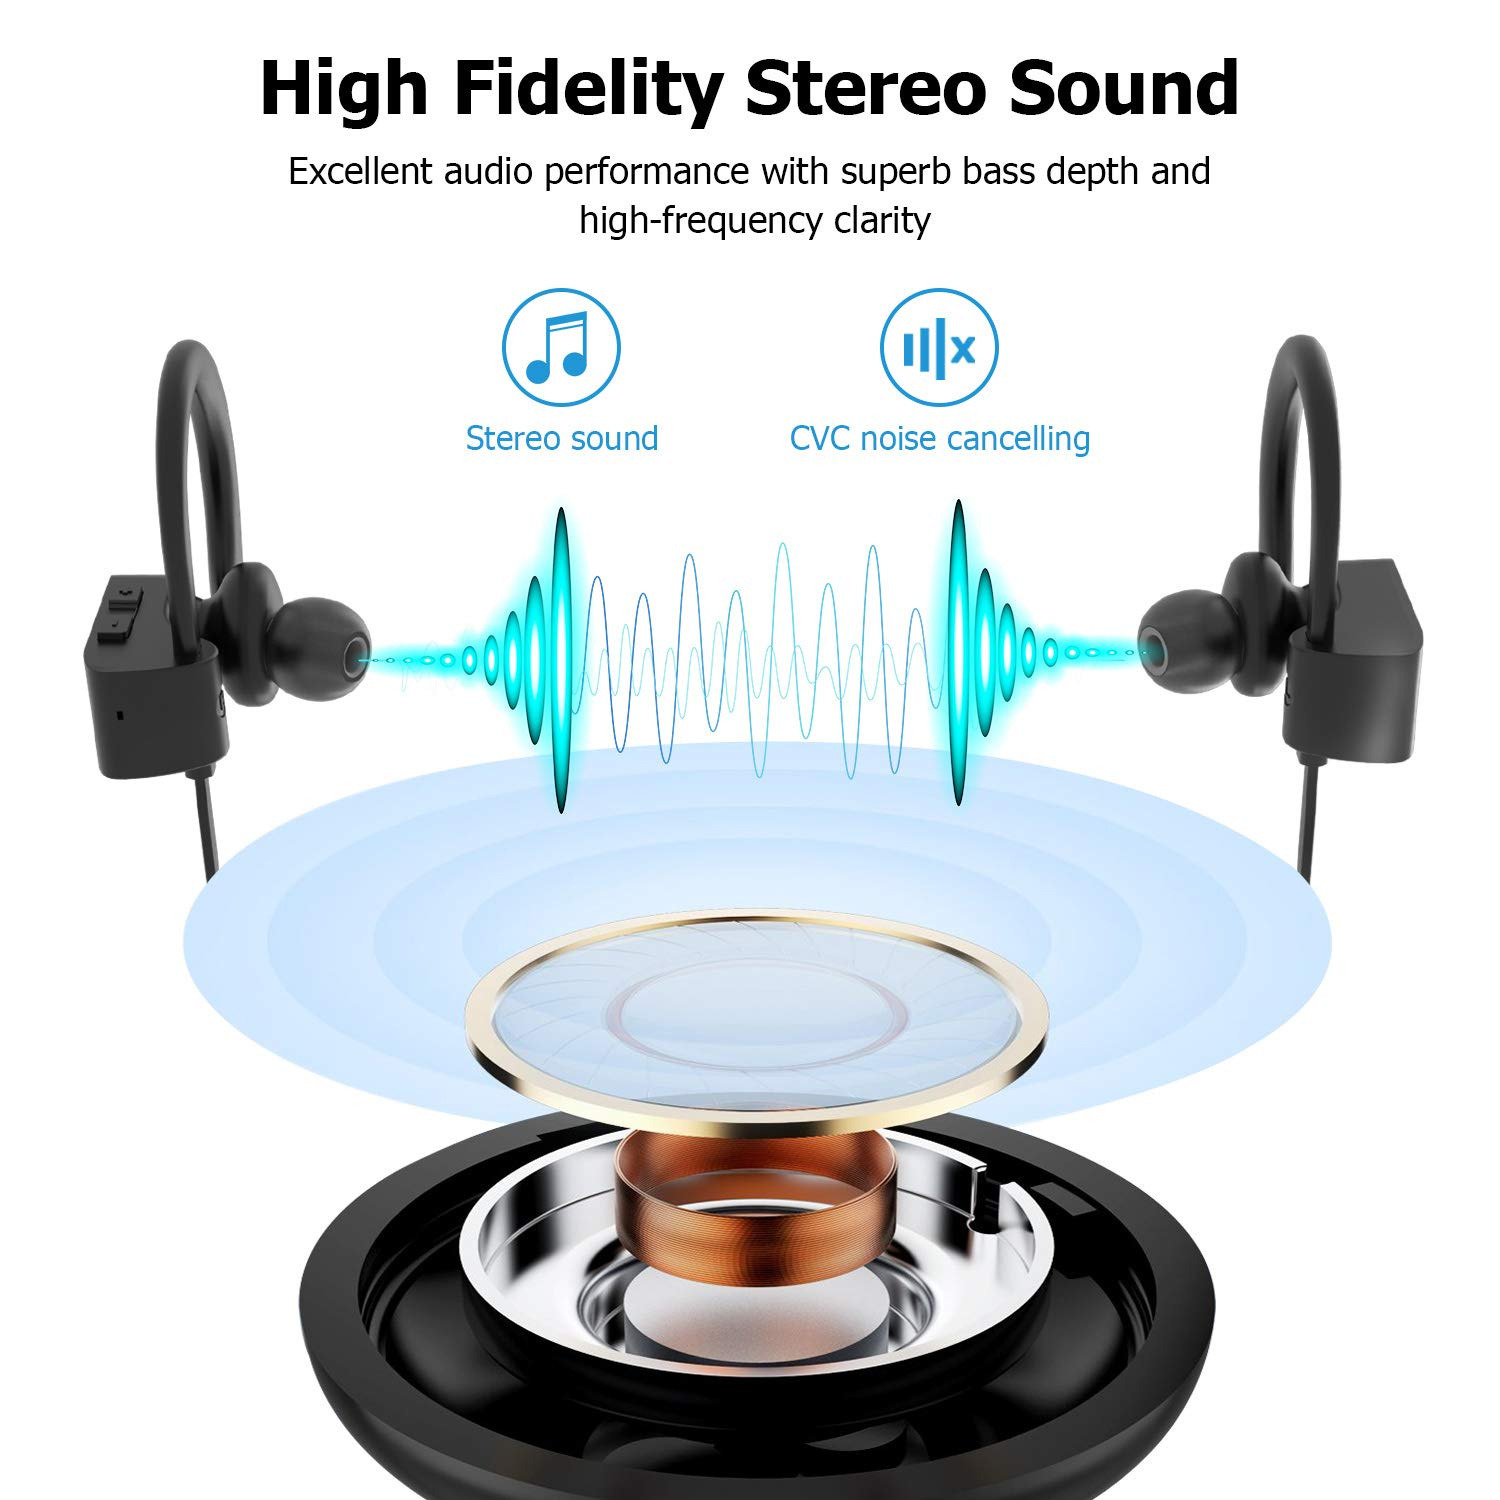 Bluetooth Headphones, LETSCOM Wireless Earbuds IPX7 Waterproof Noise Cancelling Headsets, Richer Bass & HiFi Stereo Sports Earphones 8 Hours Playtime Running Headphones with Travel Case by LETSCOM (Image #2)